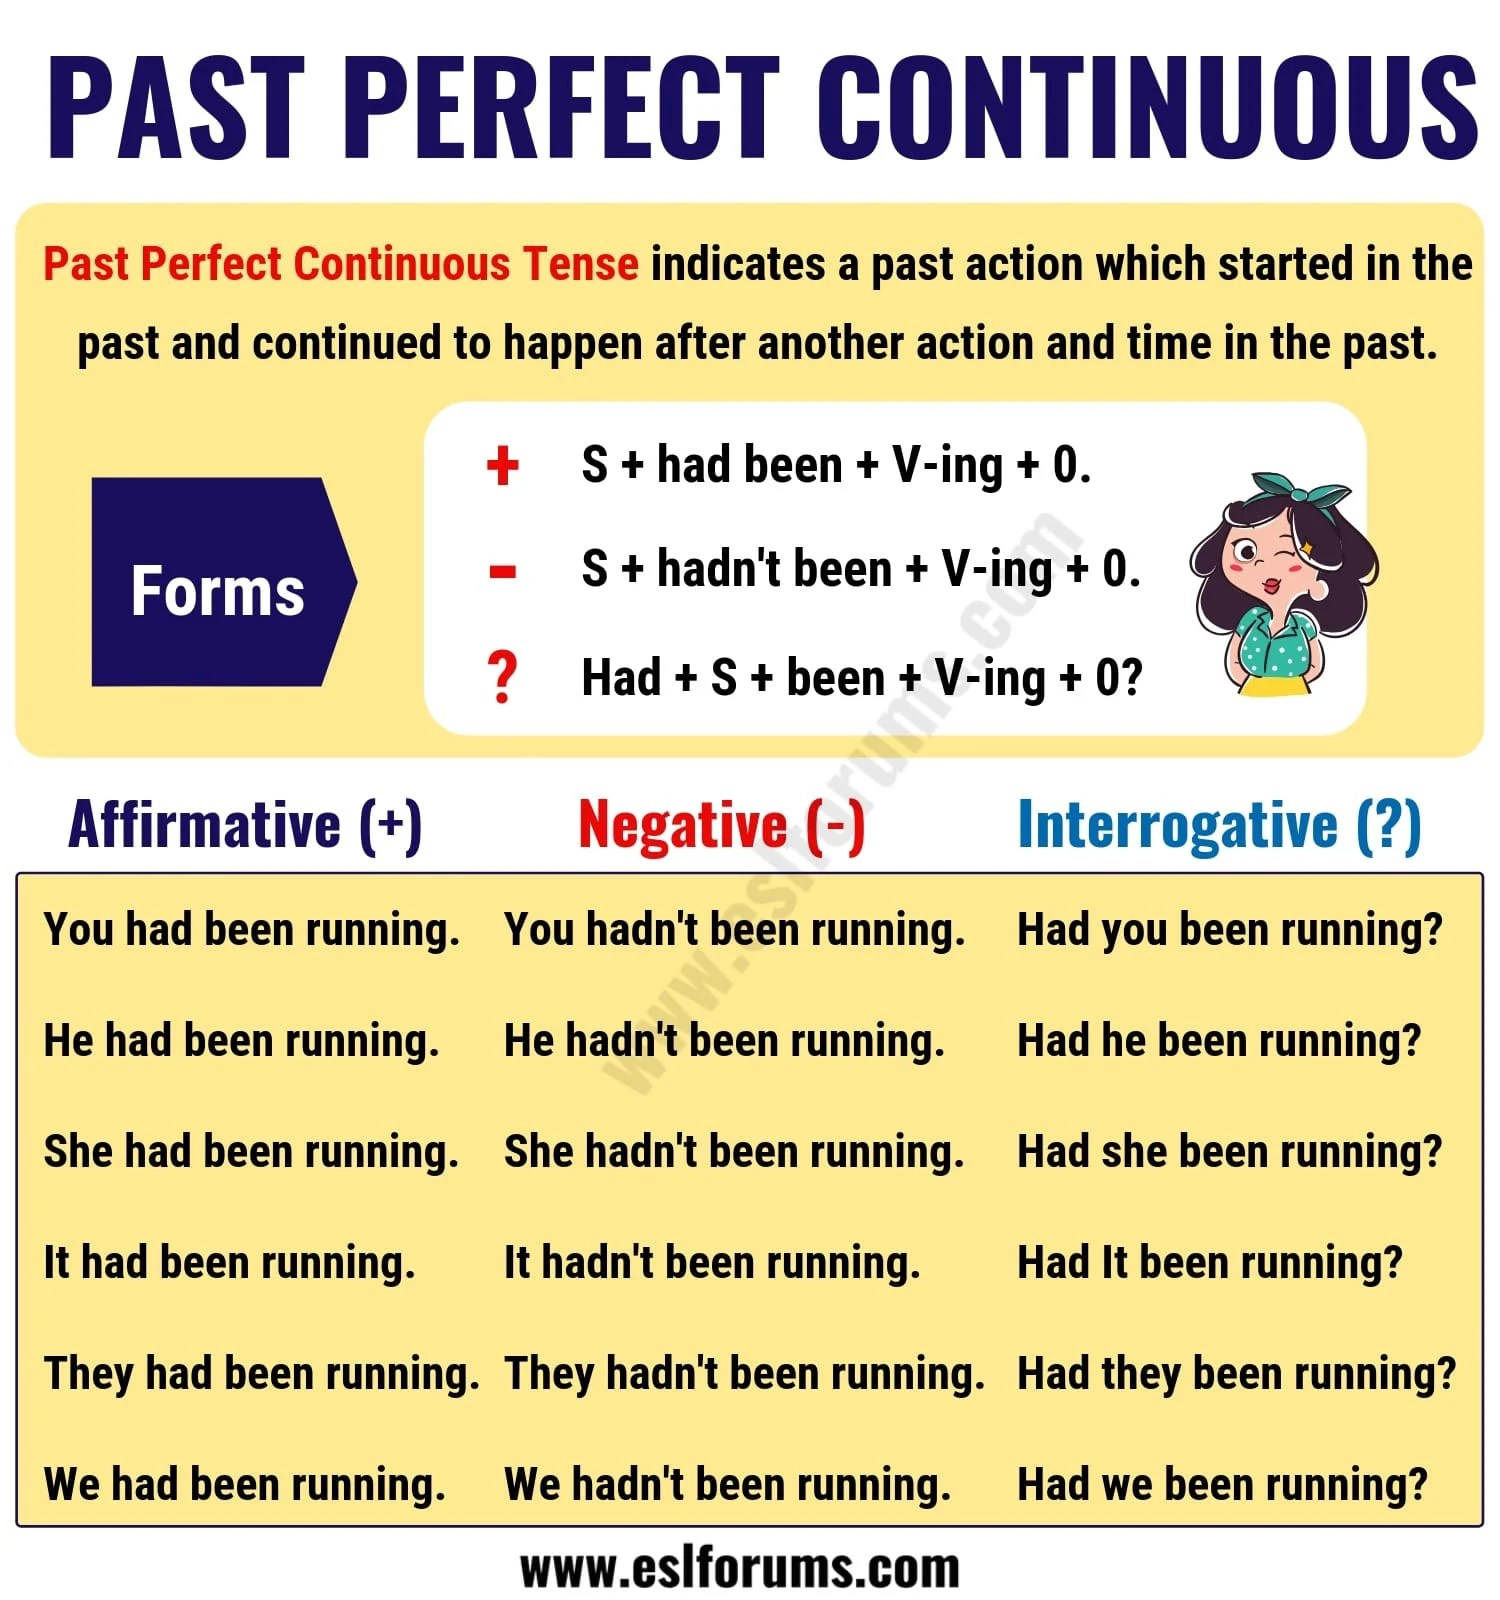 Past Perfect Continuous Tense Usage And Useful Examples